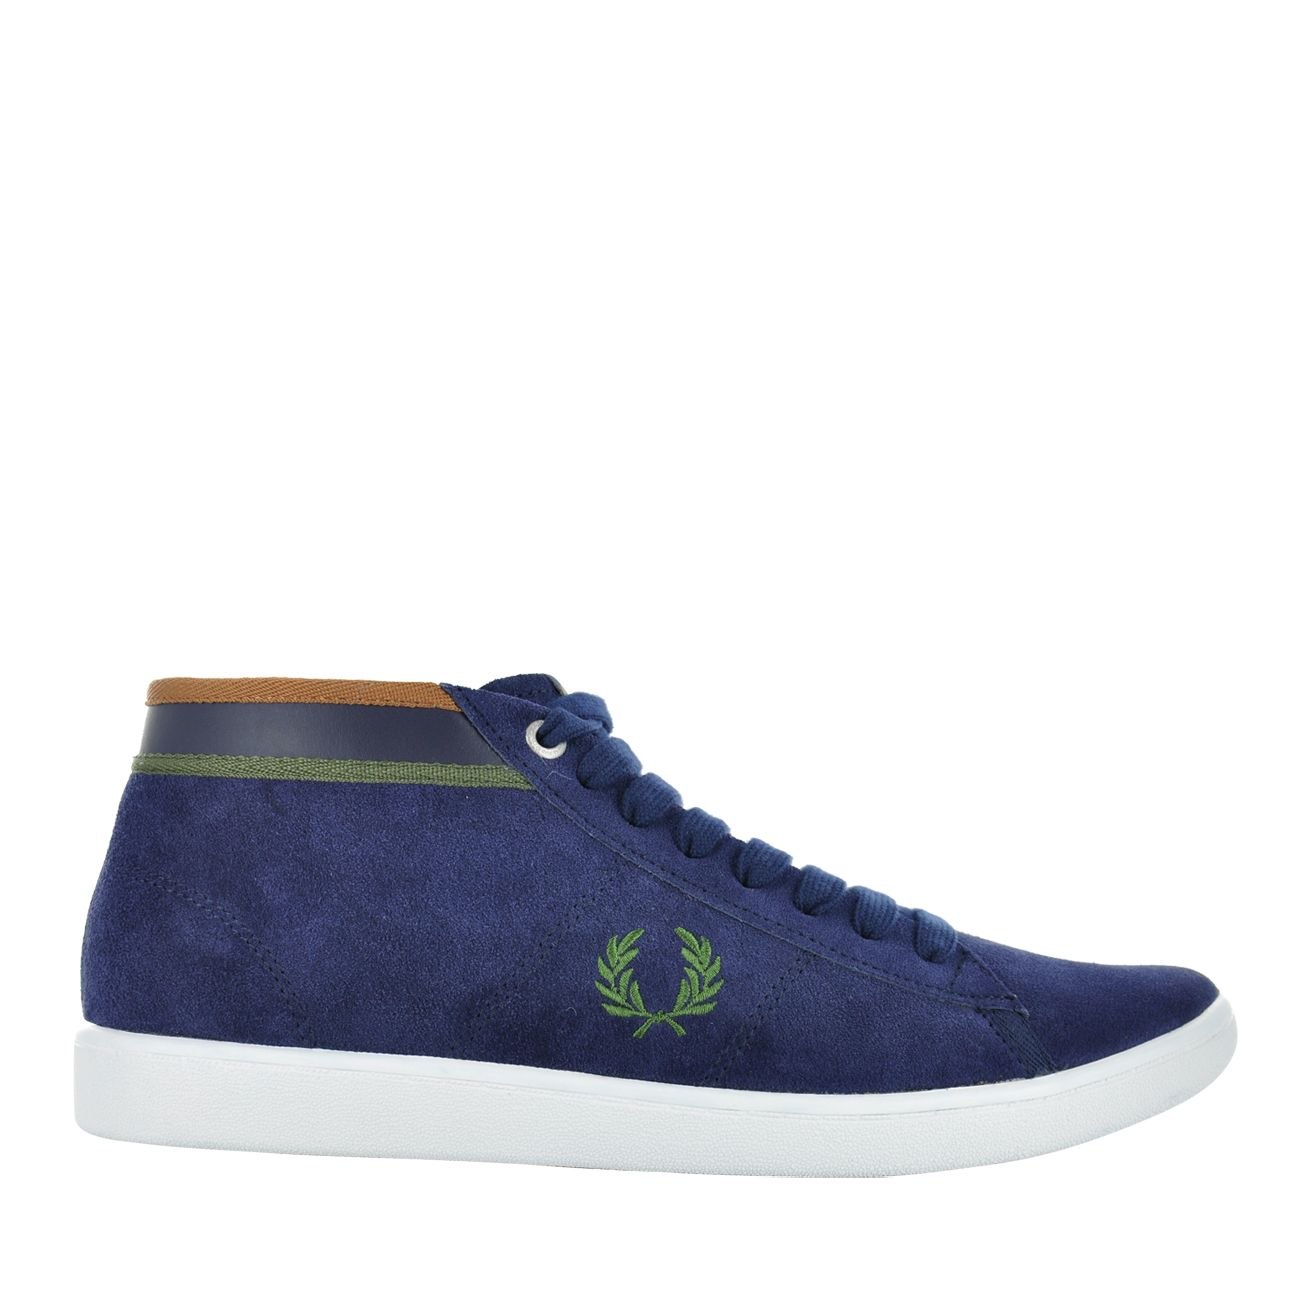 Fred Perry - #293530729 - $115.00